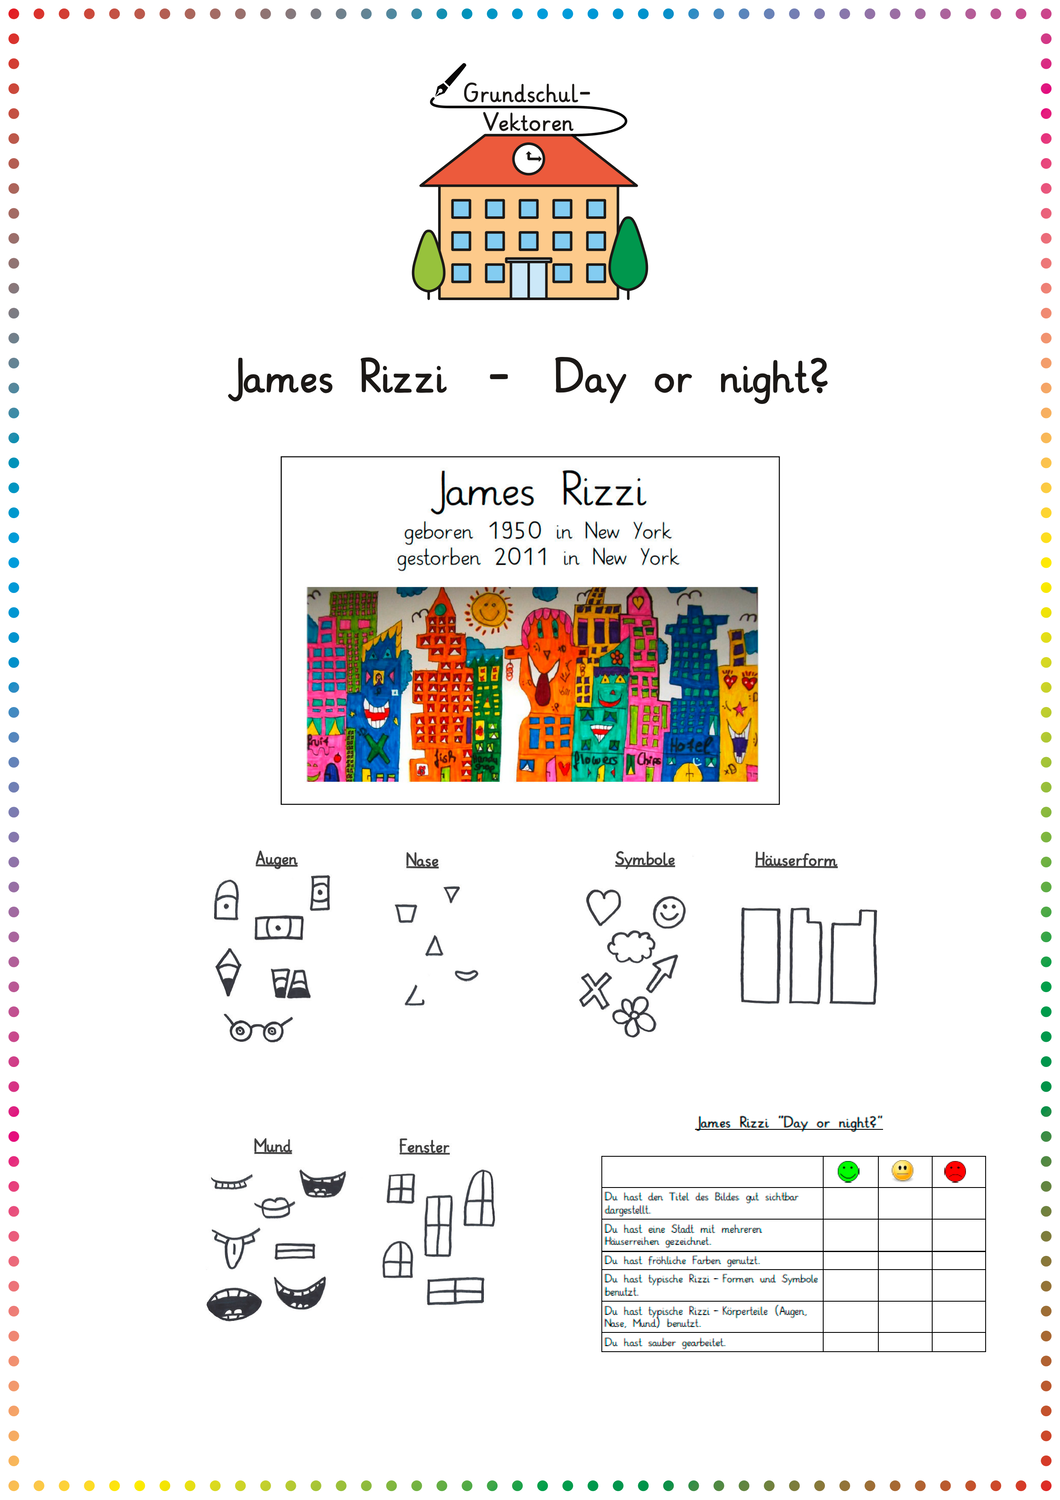 james rizzi  day or night  unterrichtsmaterial in den